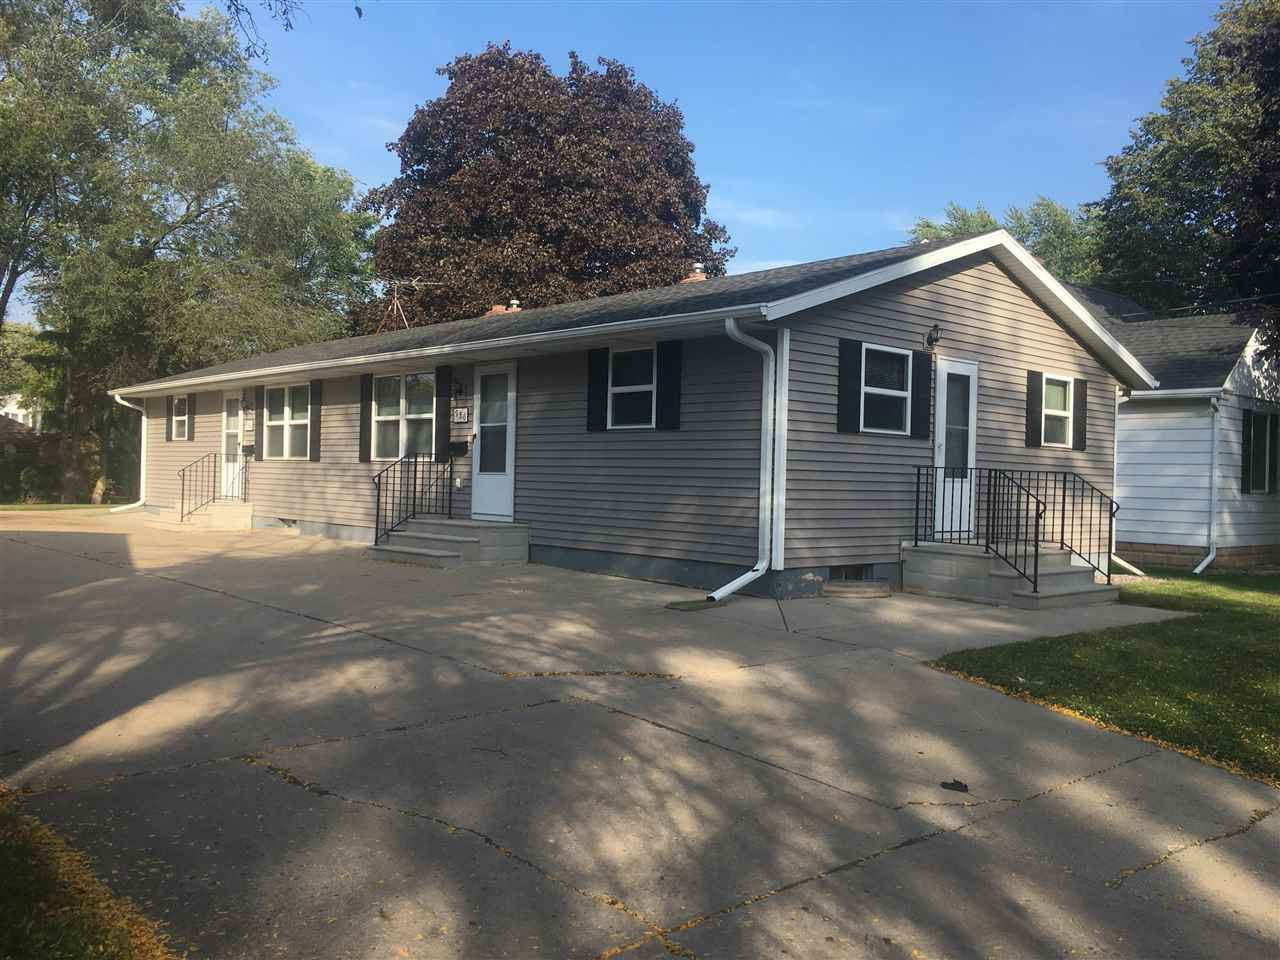 956 LANGLADE Avenue, Green Bay, WI 54304 - MLS#: 50240031